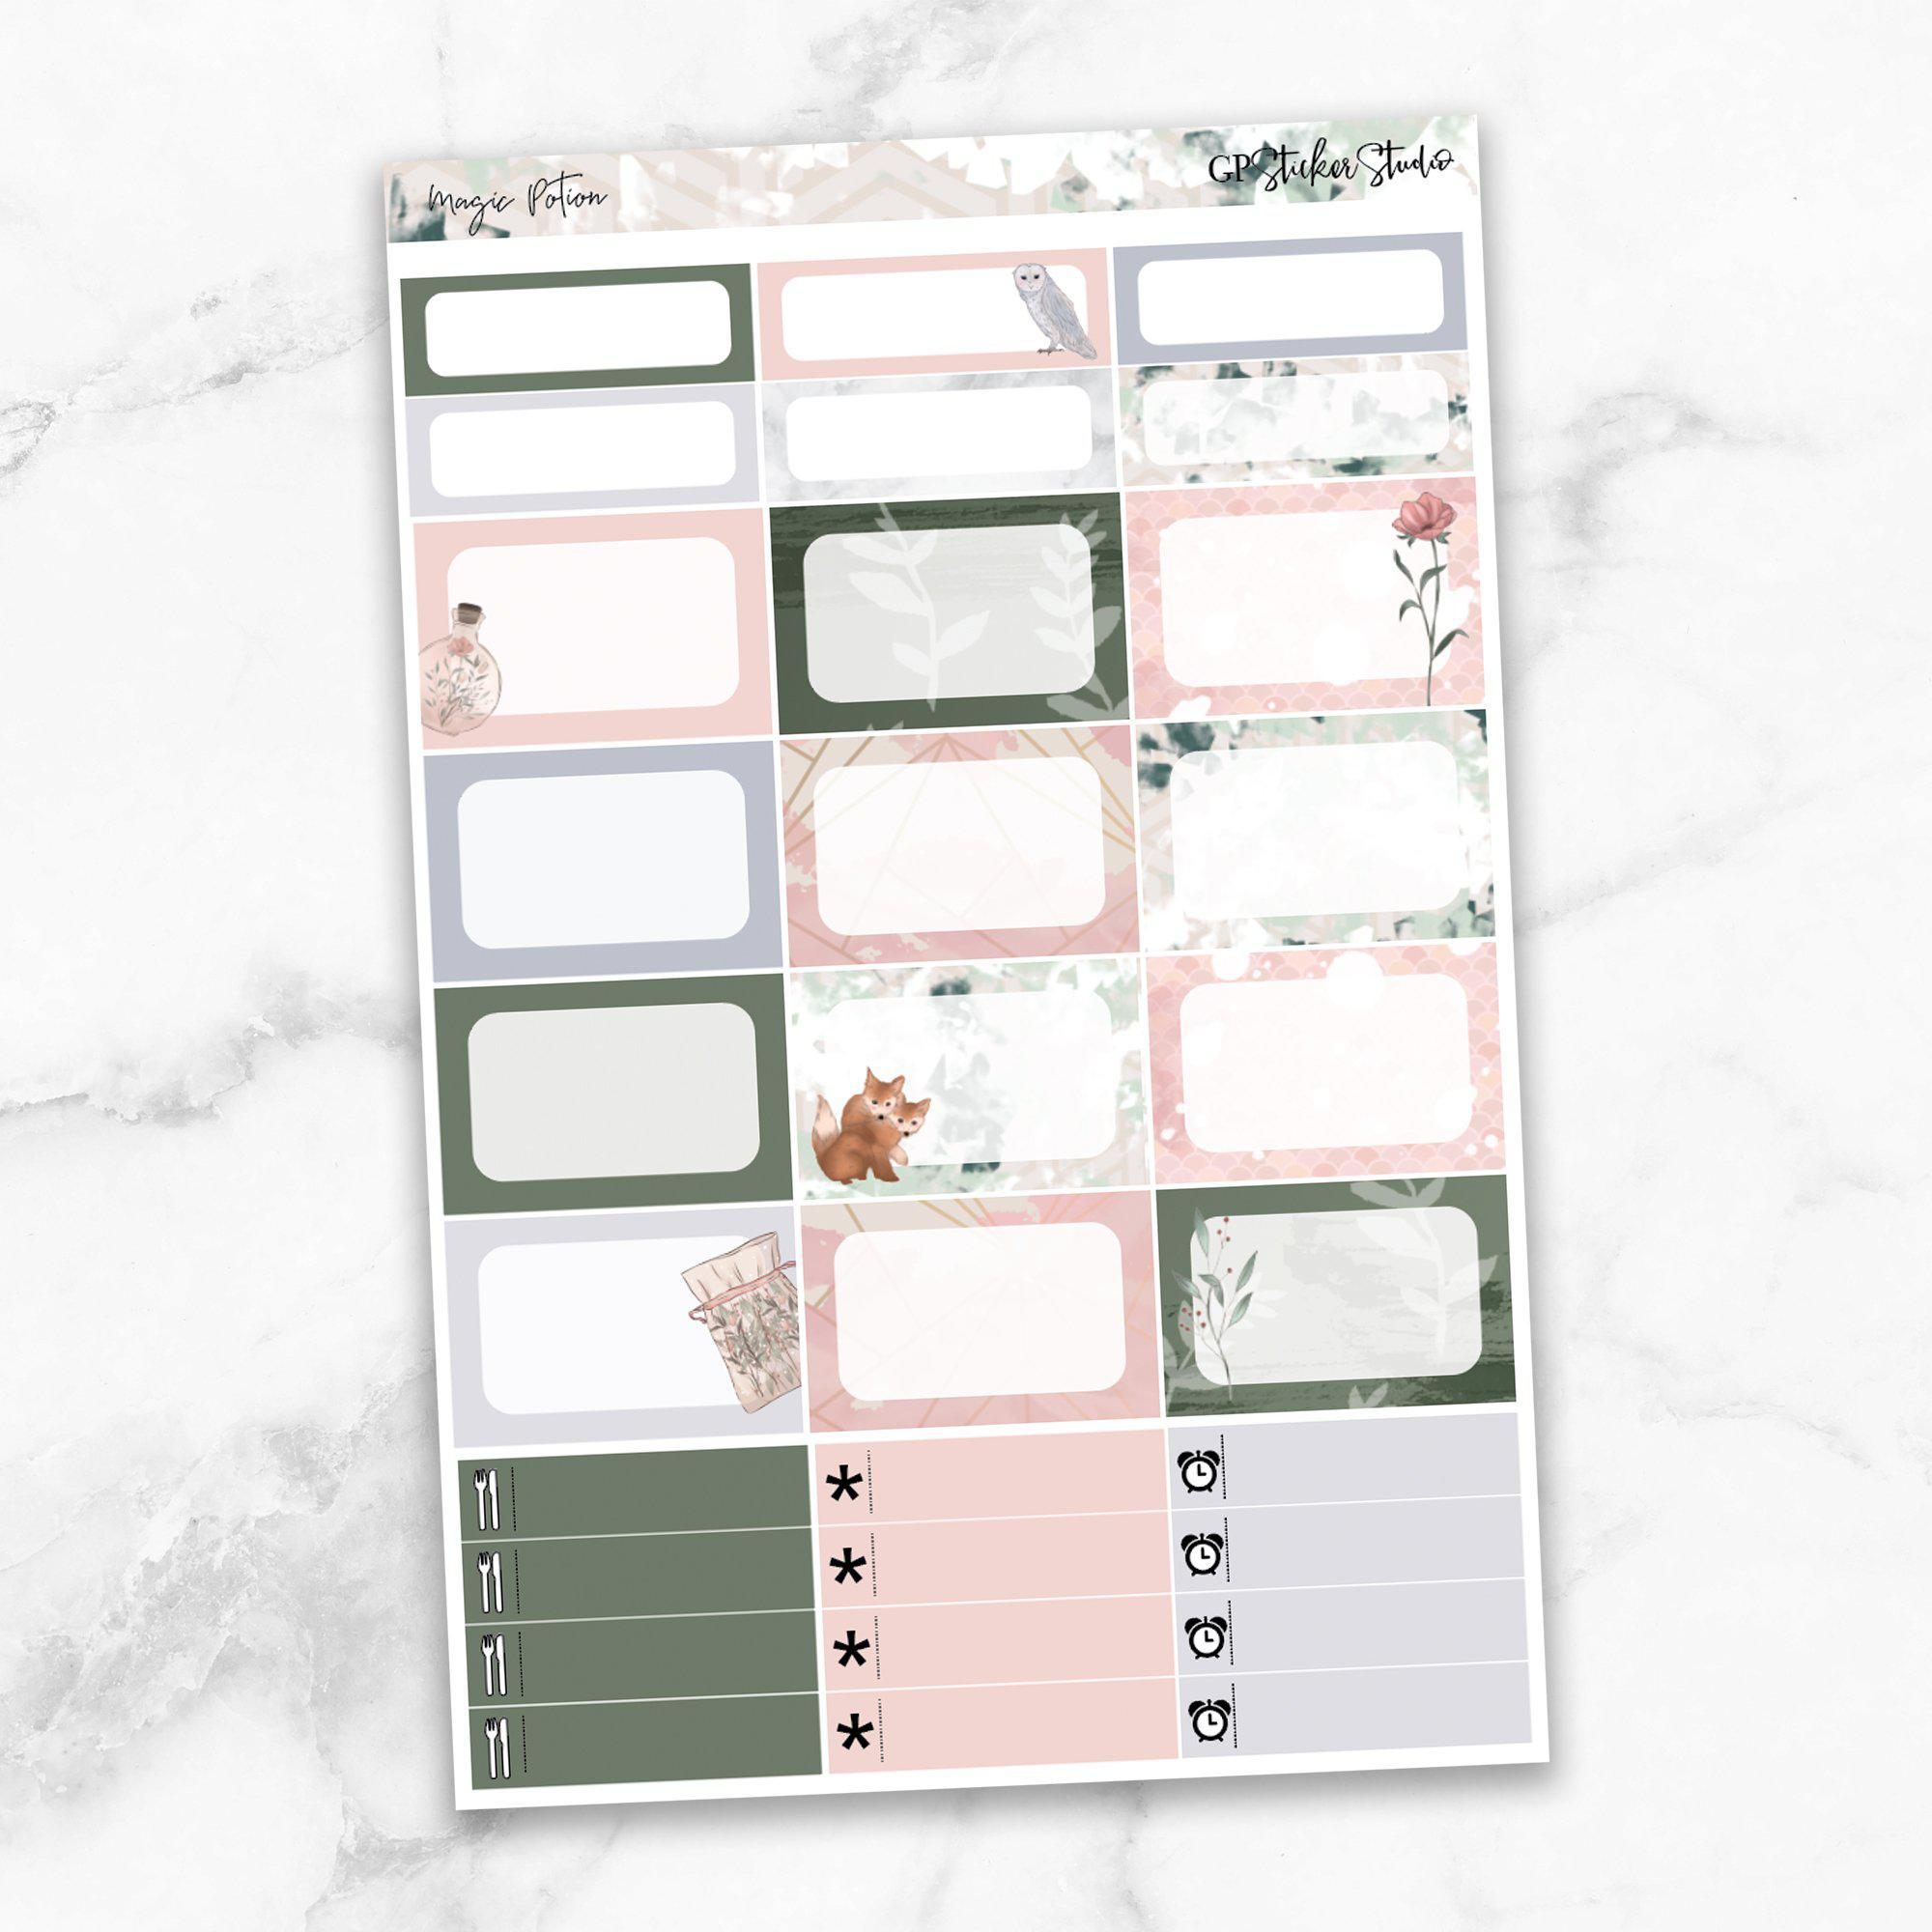 MAGIC POTION Half Boxes Planner Stickers-The GP Studio